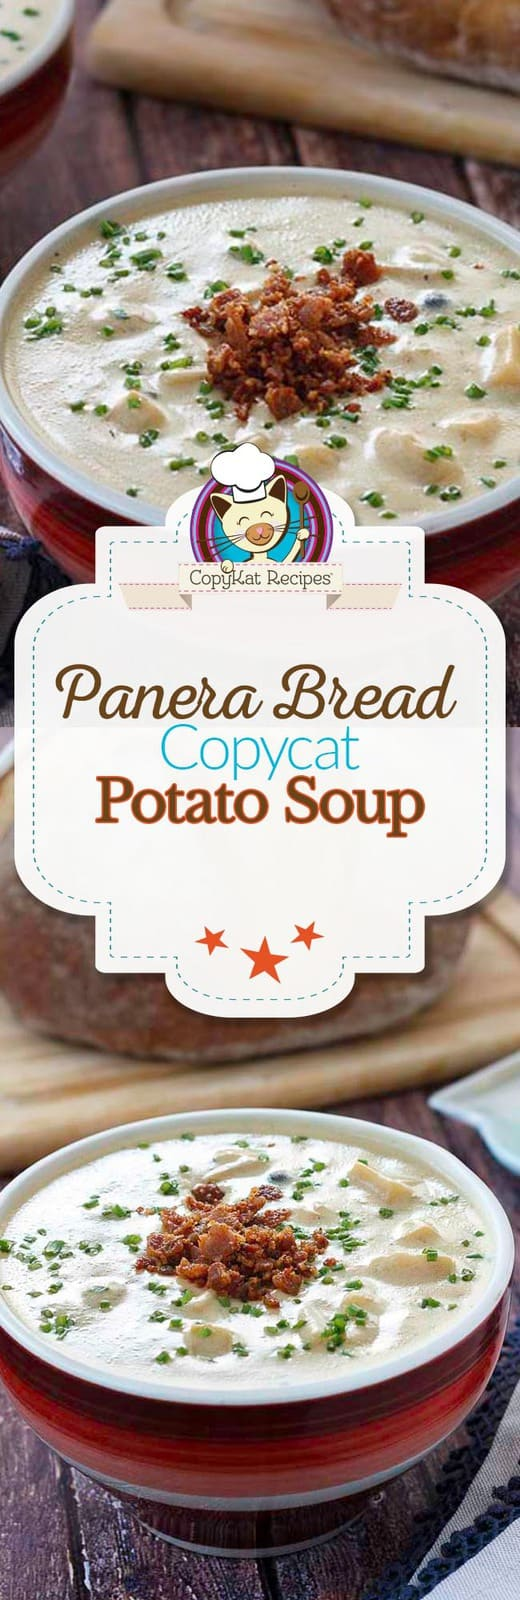 Copycat Panera Bread Baked Potato Soup